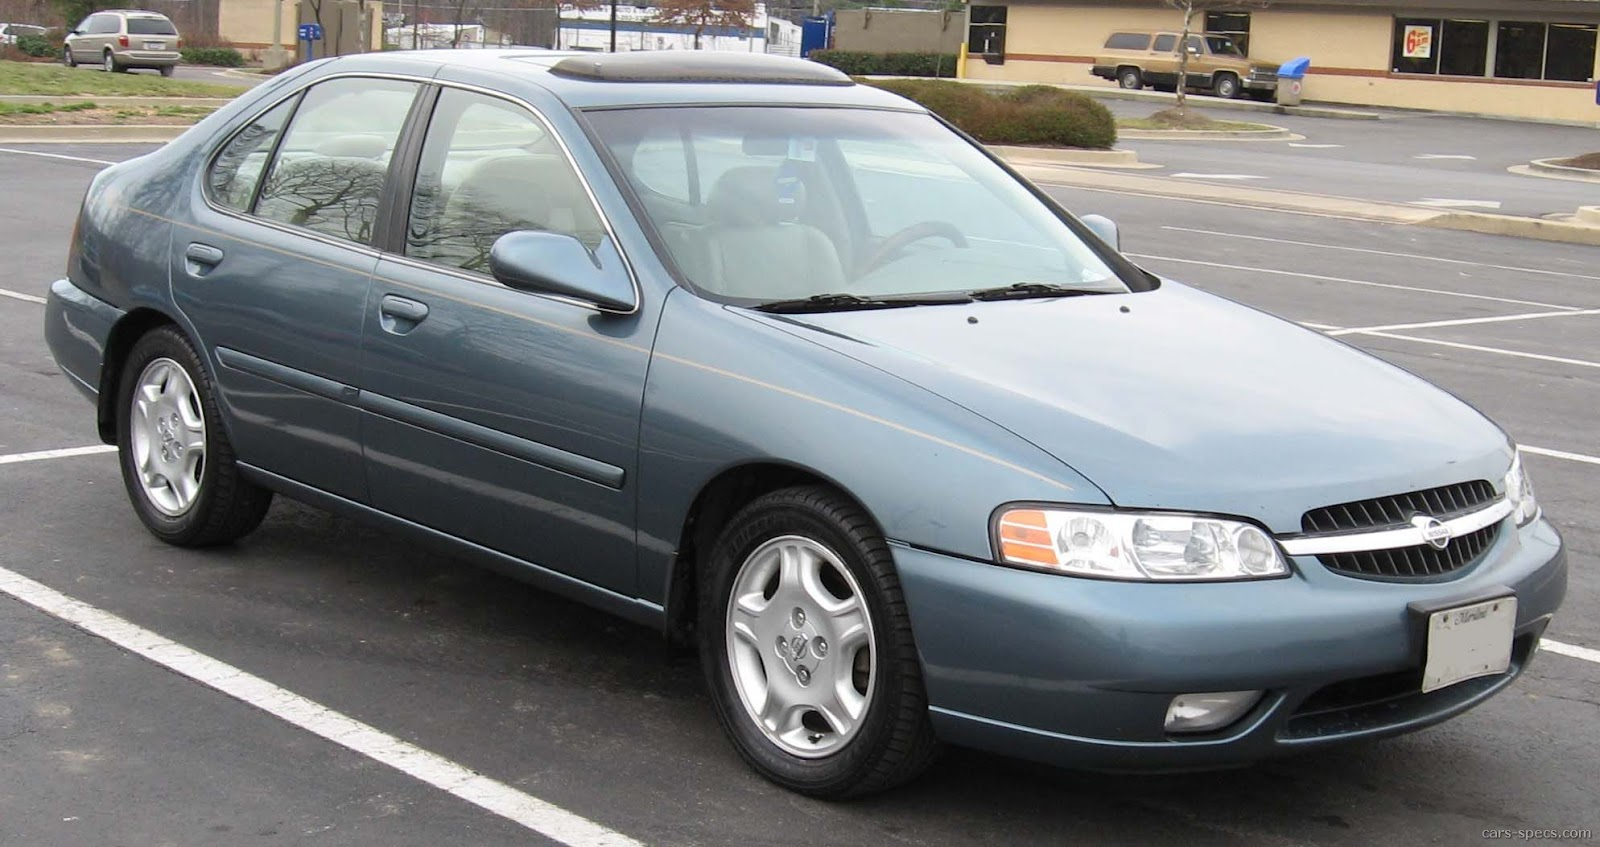 2000 Nissan altima gxe specifications #7